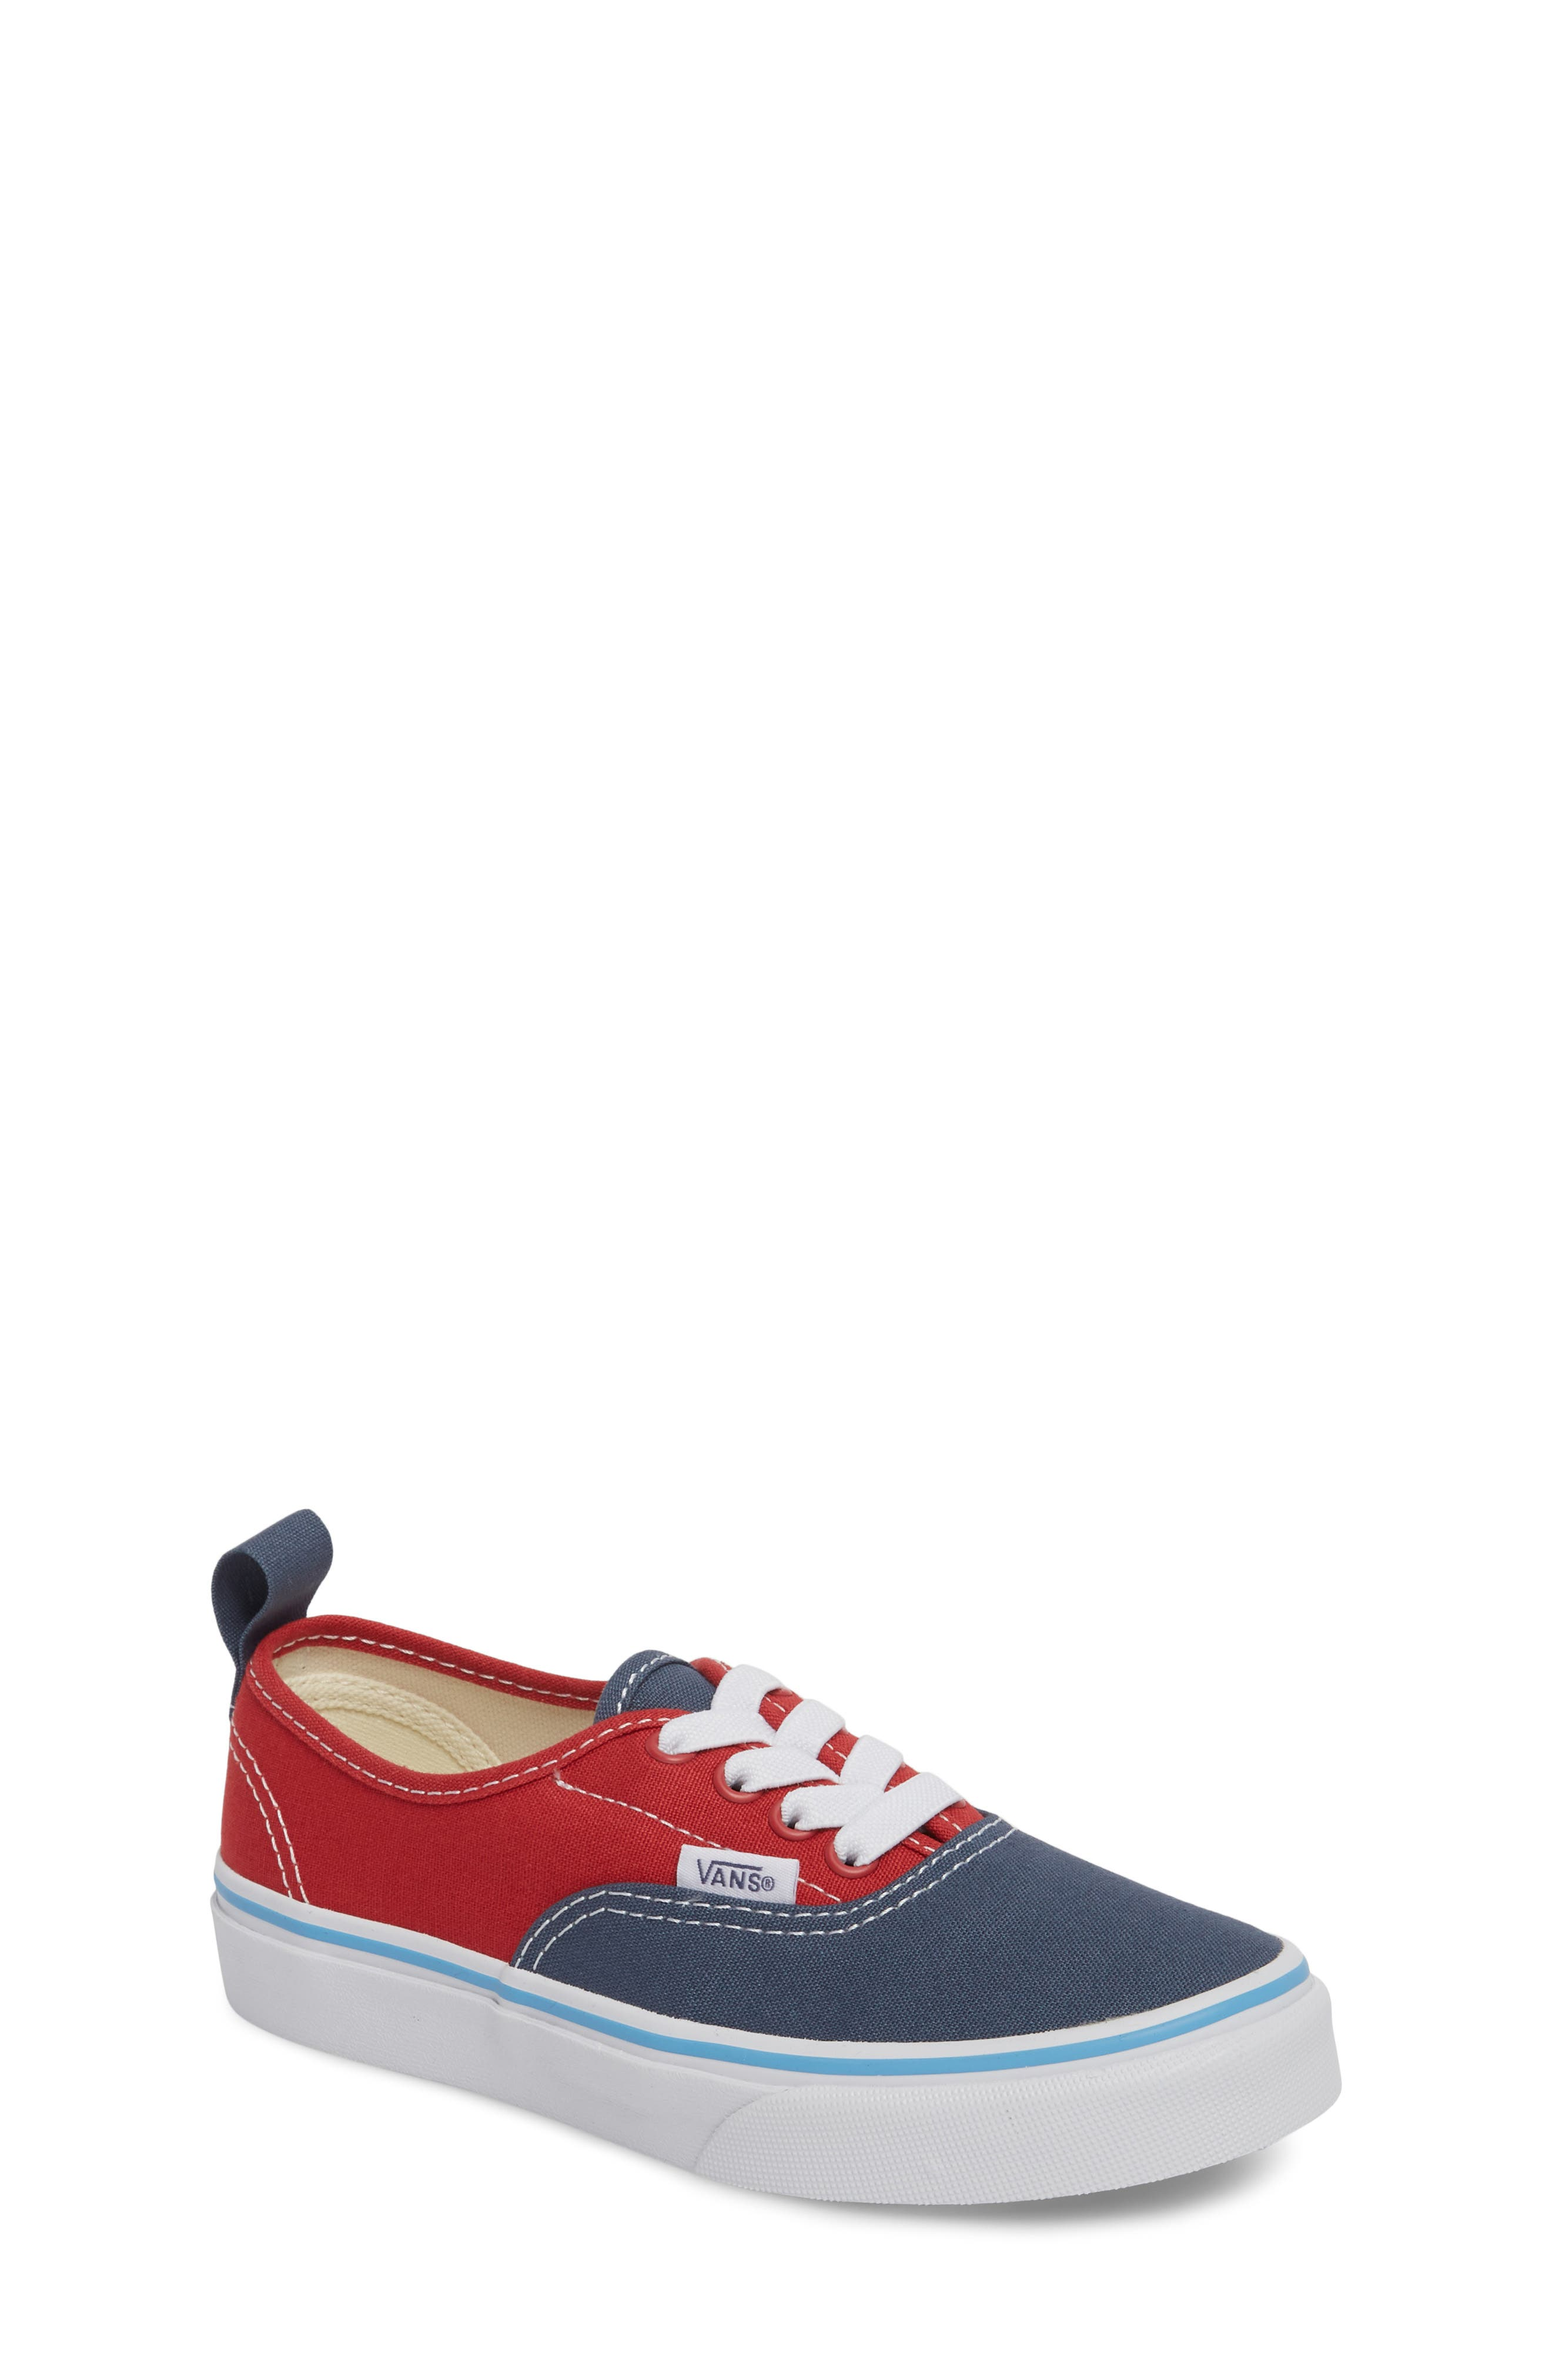 Authentic Low Top Sneaker,                             Main thumbnail 1, color,                             Indigo/ Blue/ Red Tri Pop